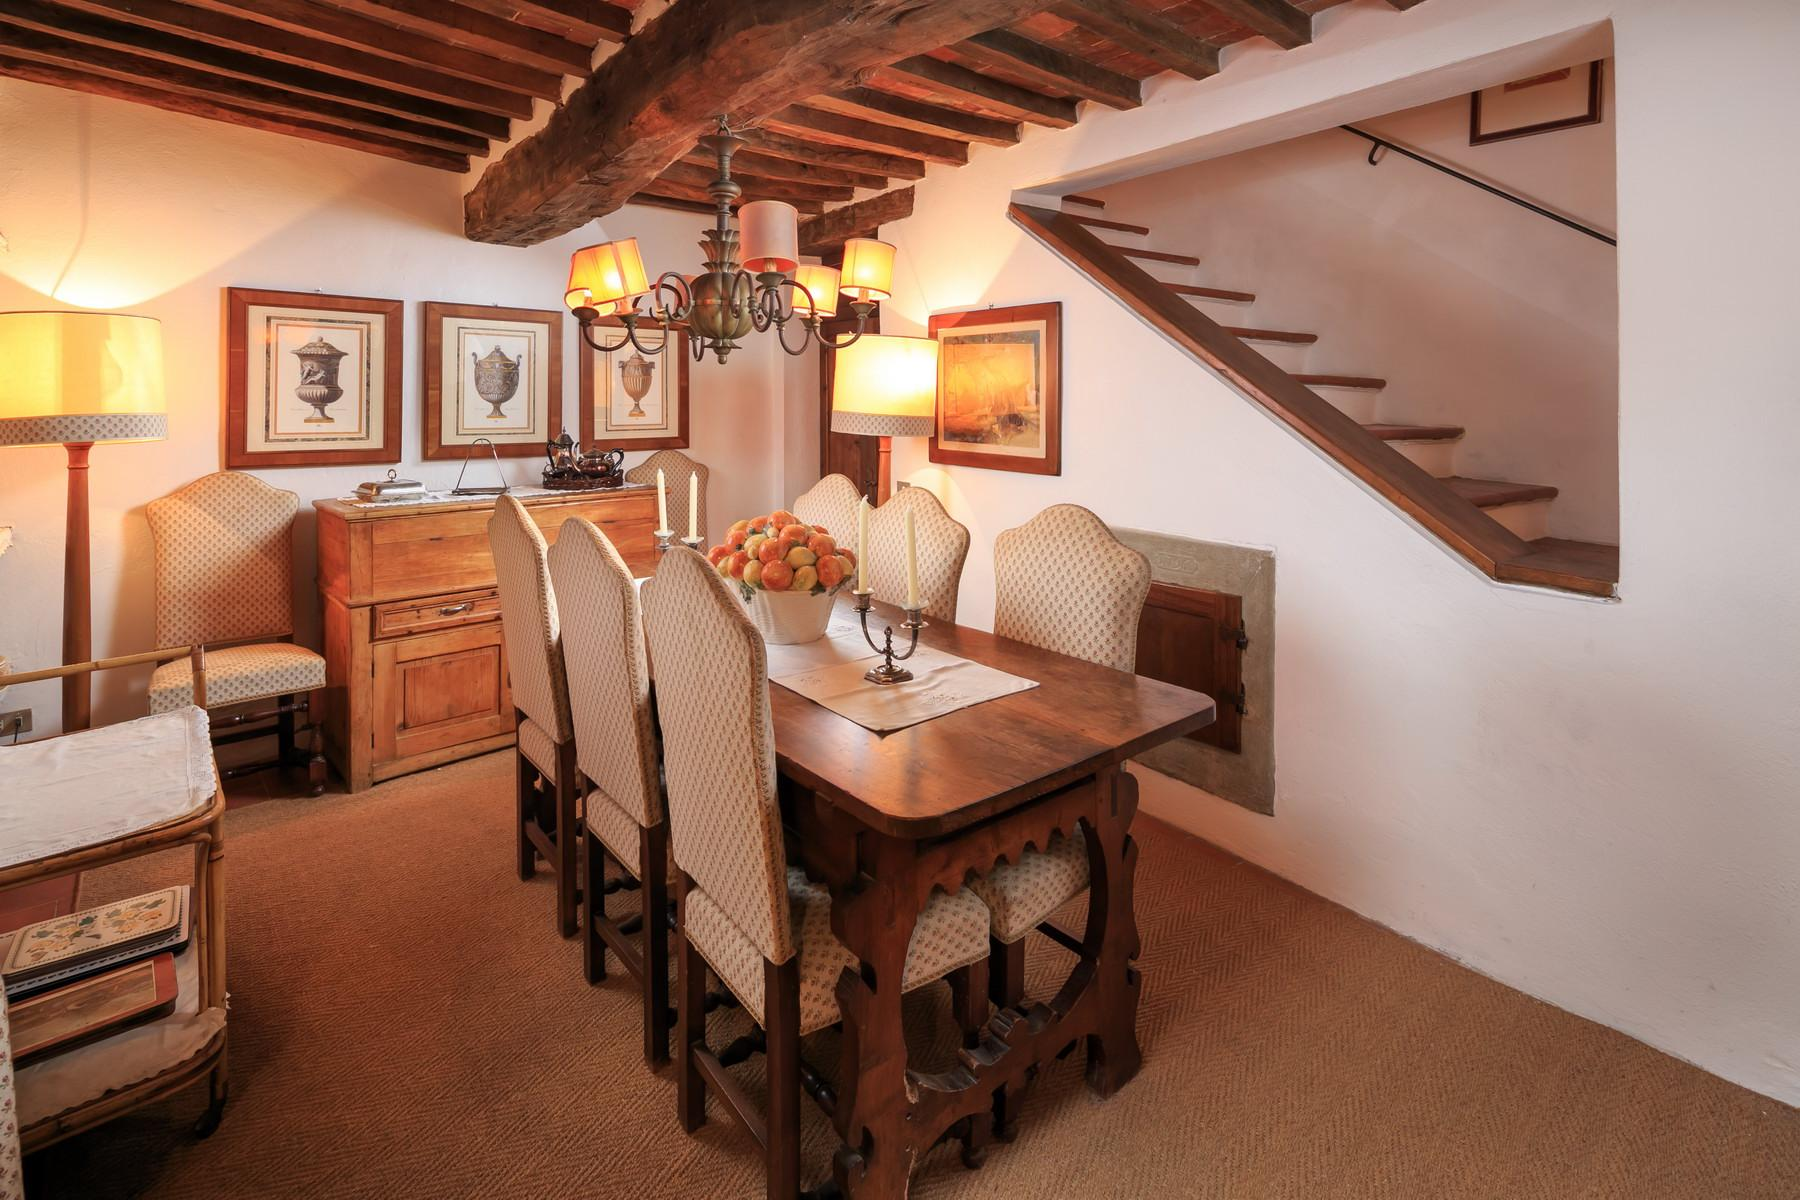 Wonderful farmhouse in the Chianti hills - 10